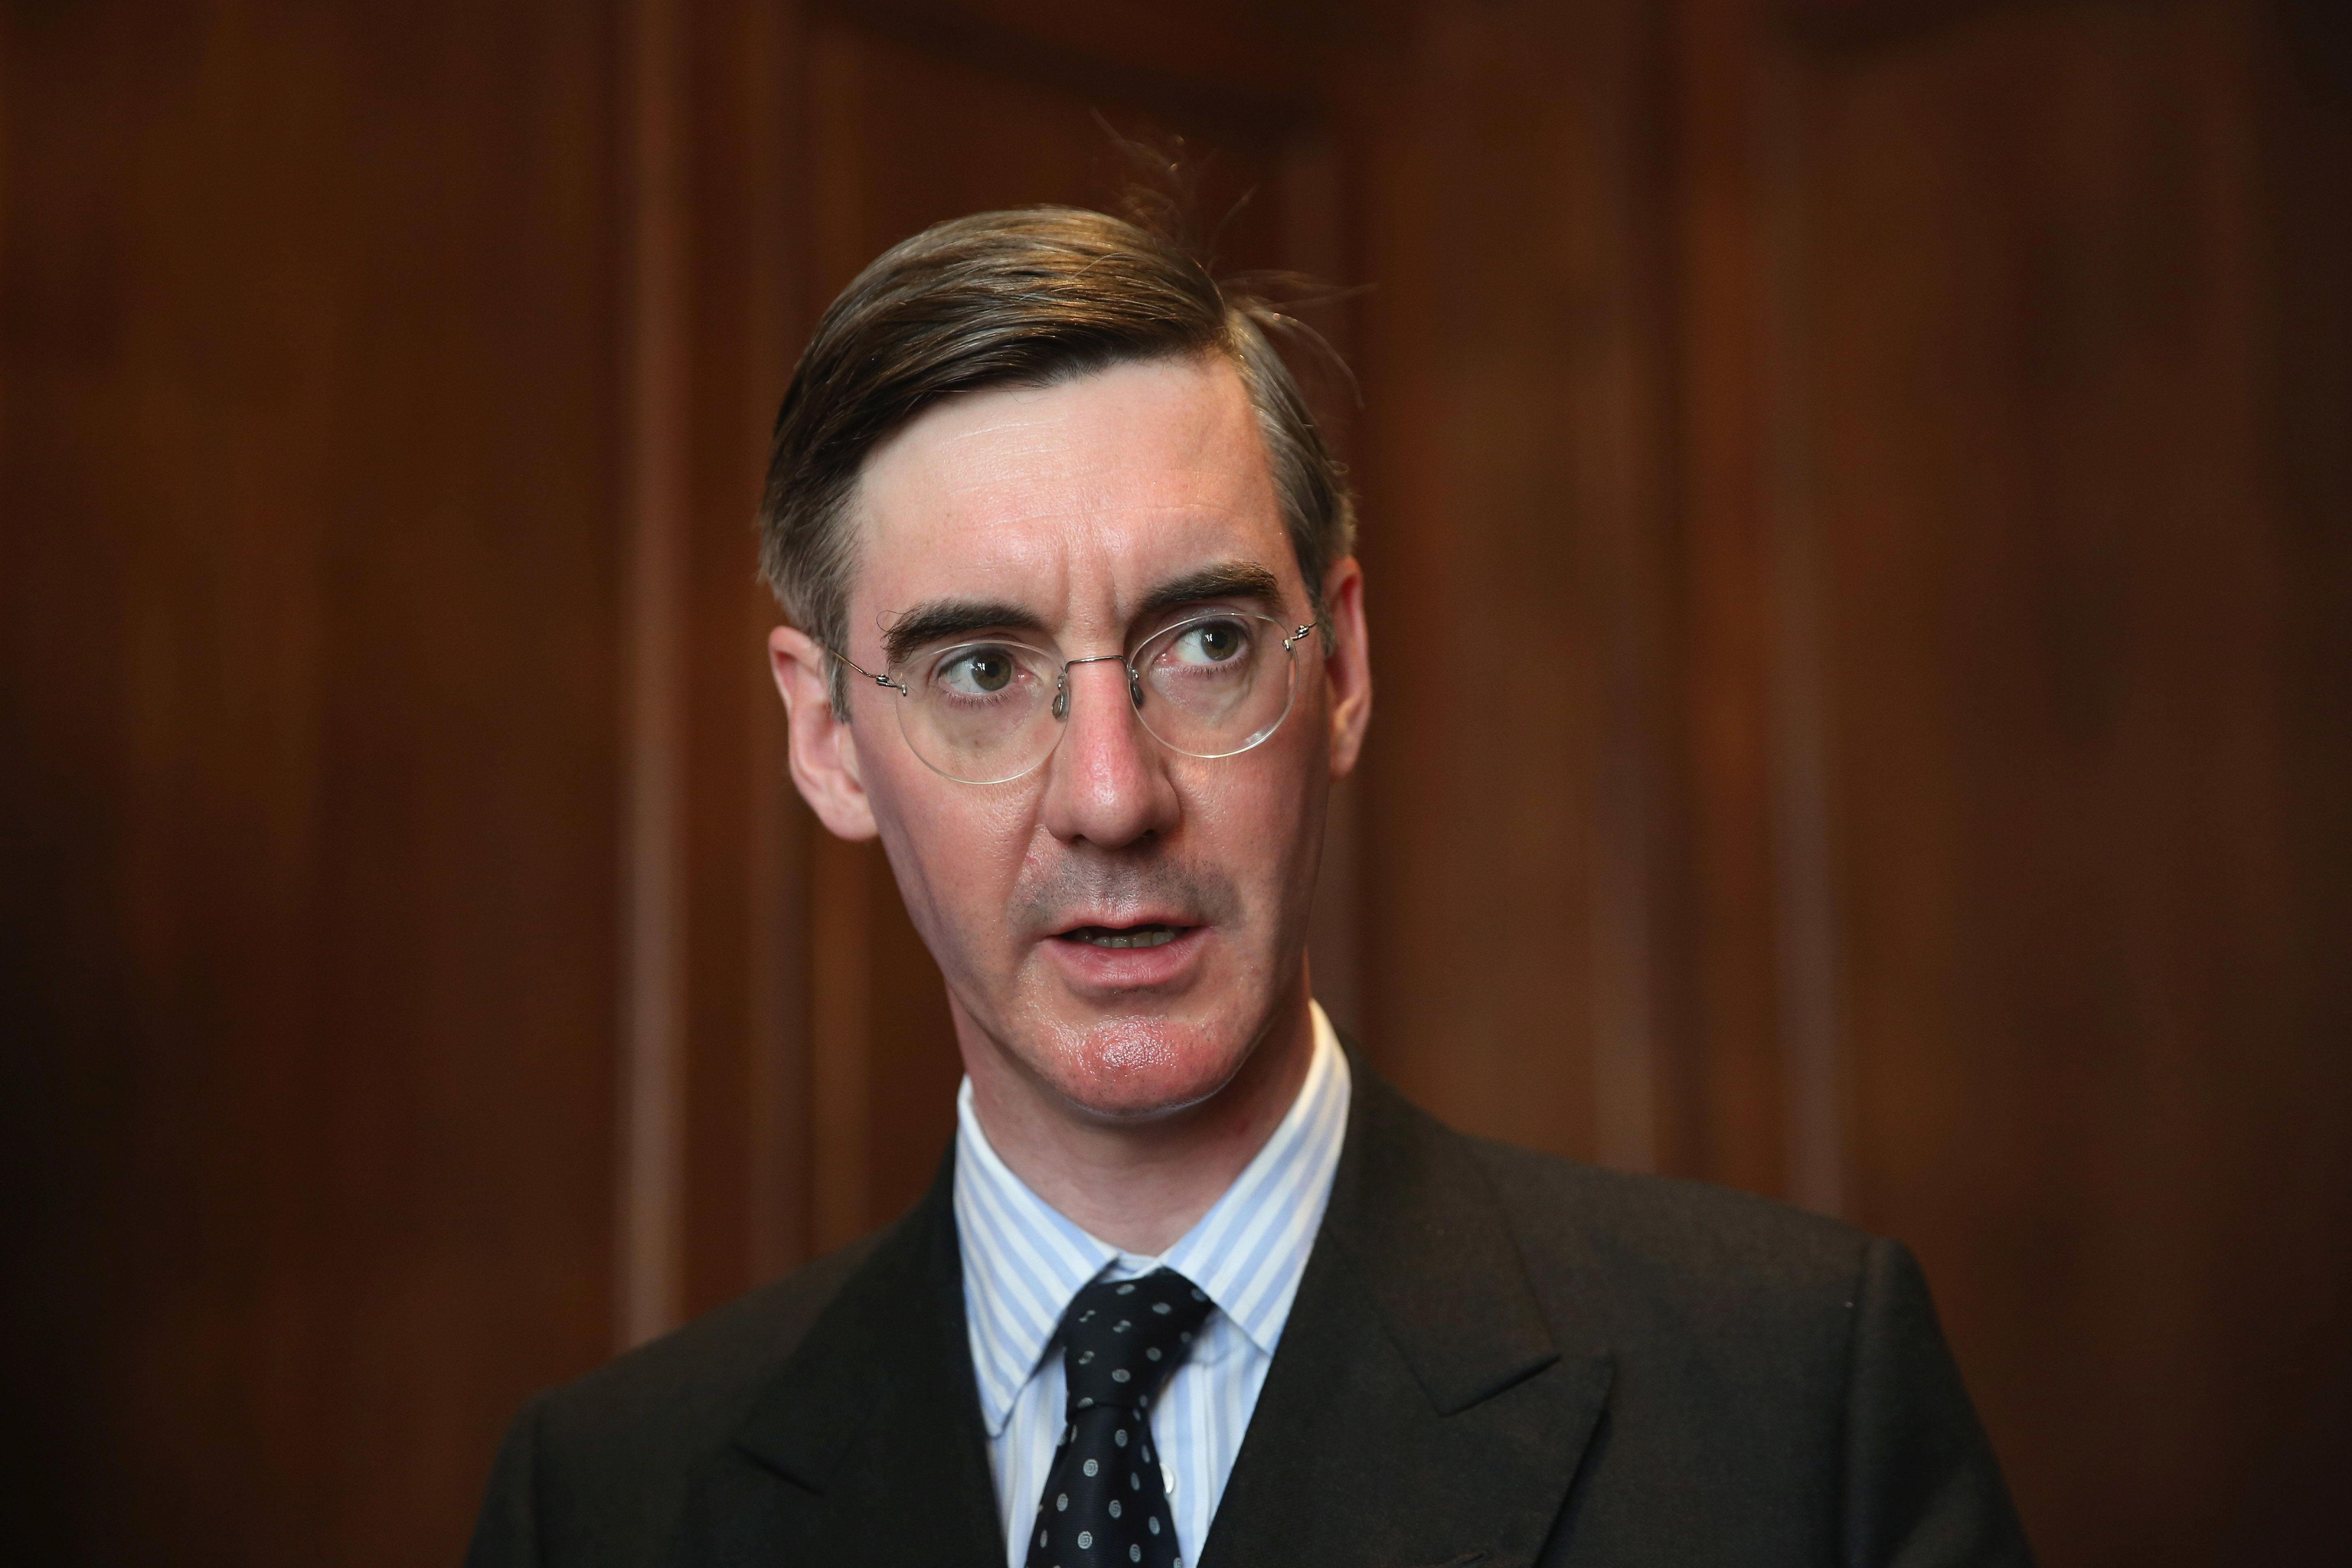 Jacob Rees-Mogg makes another howler live on air